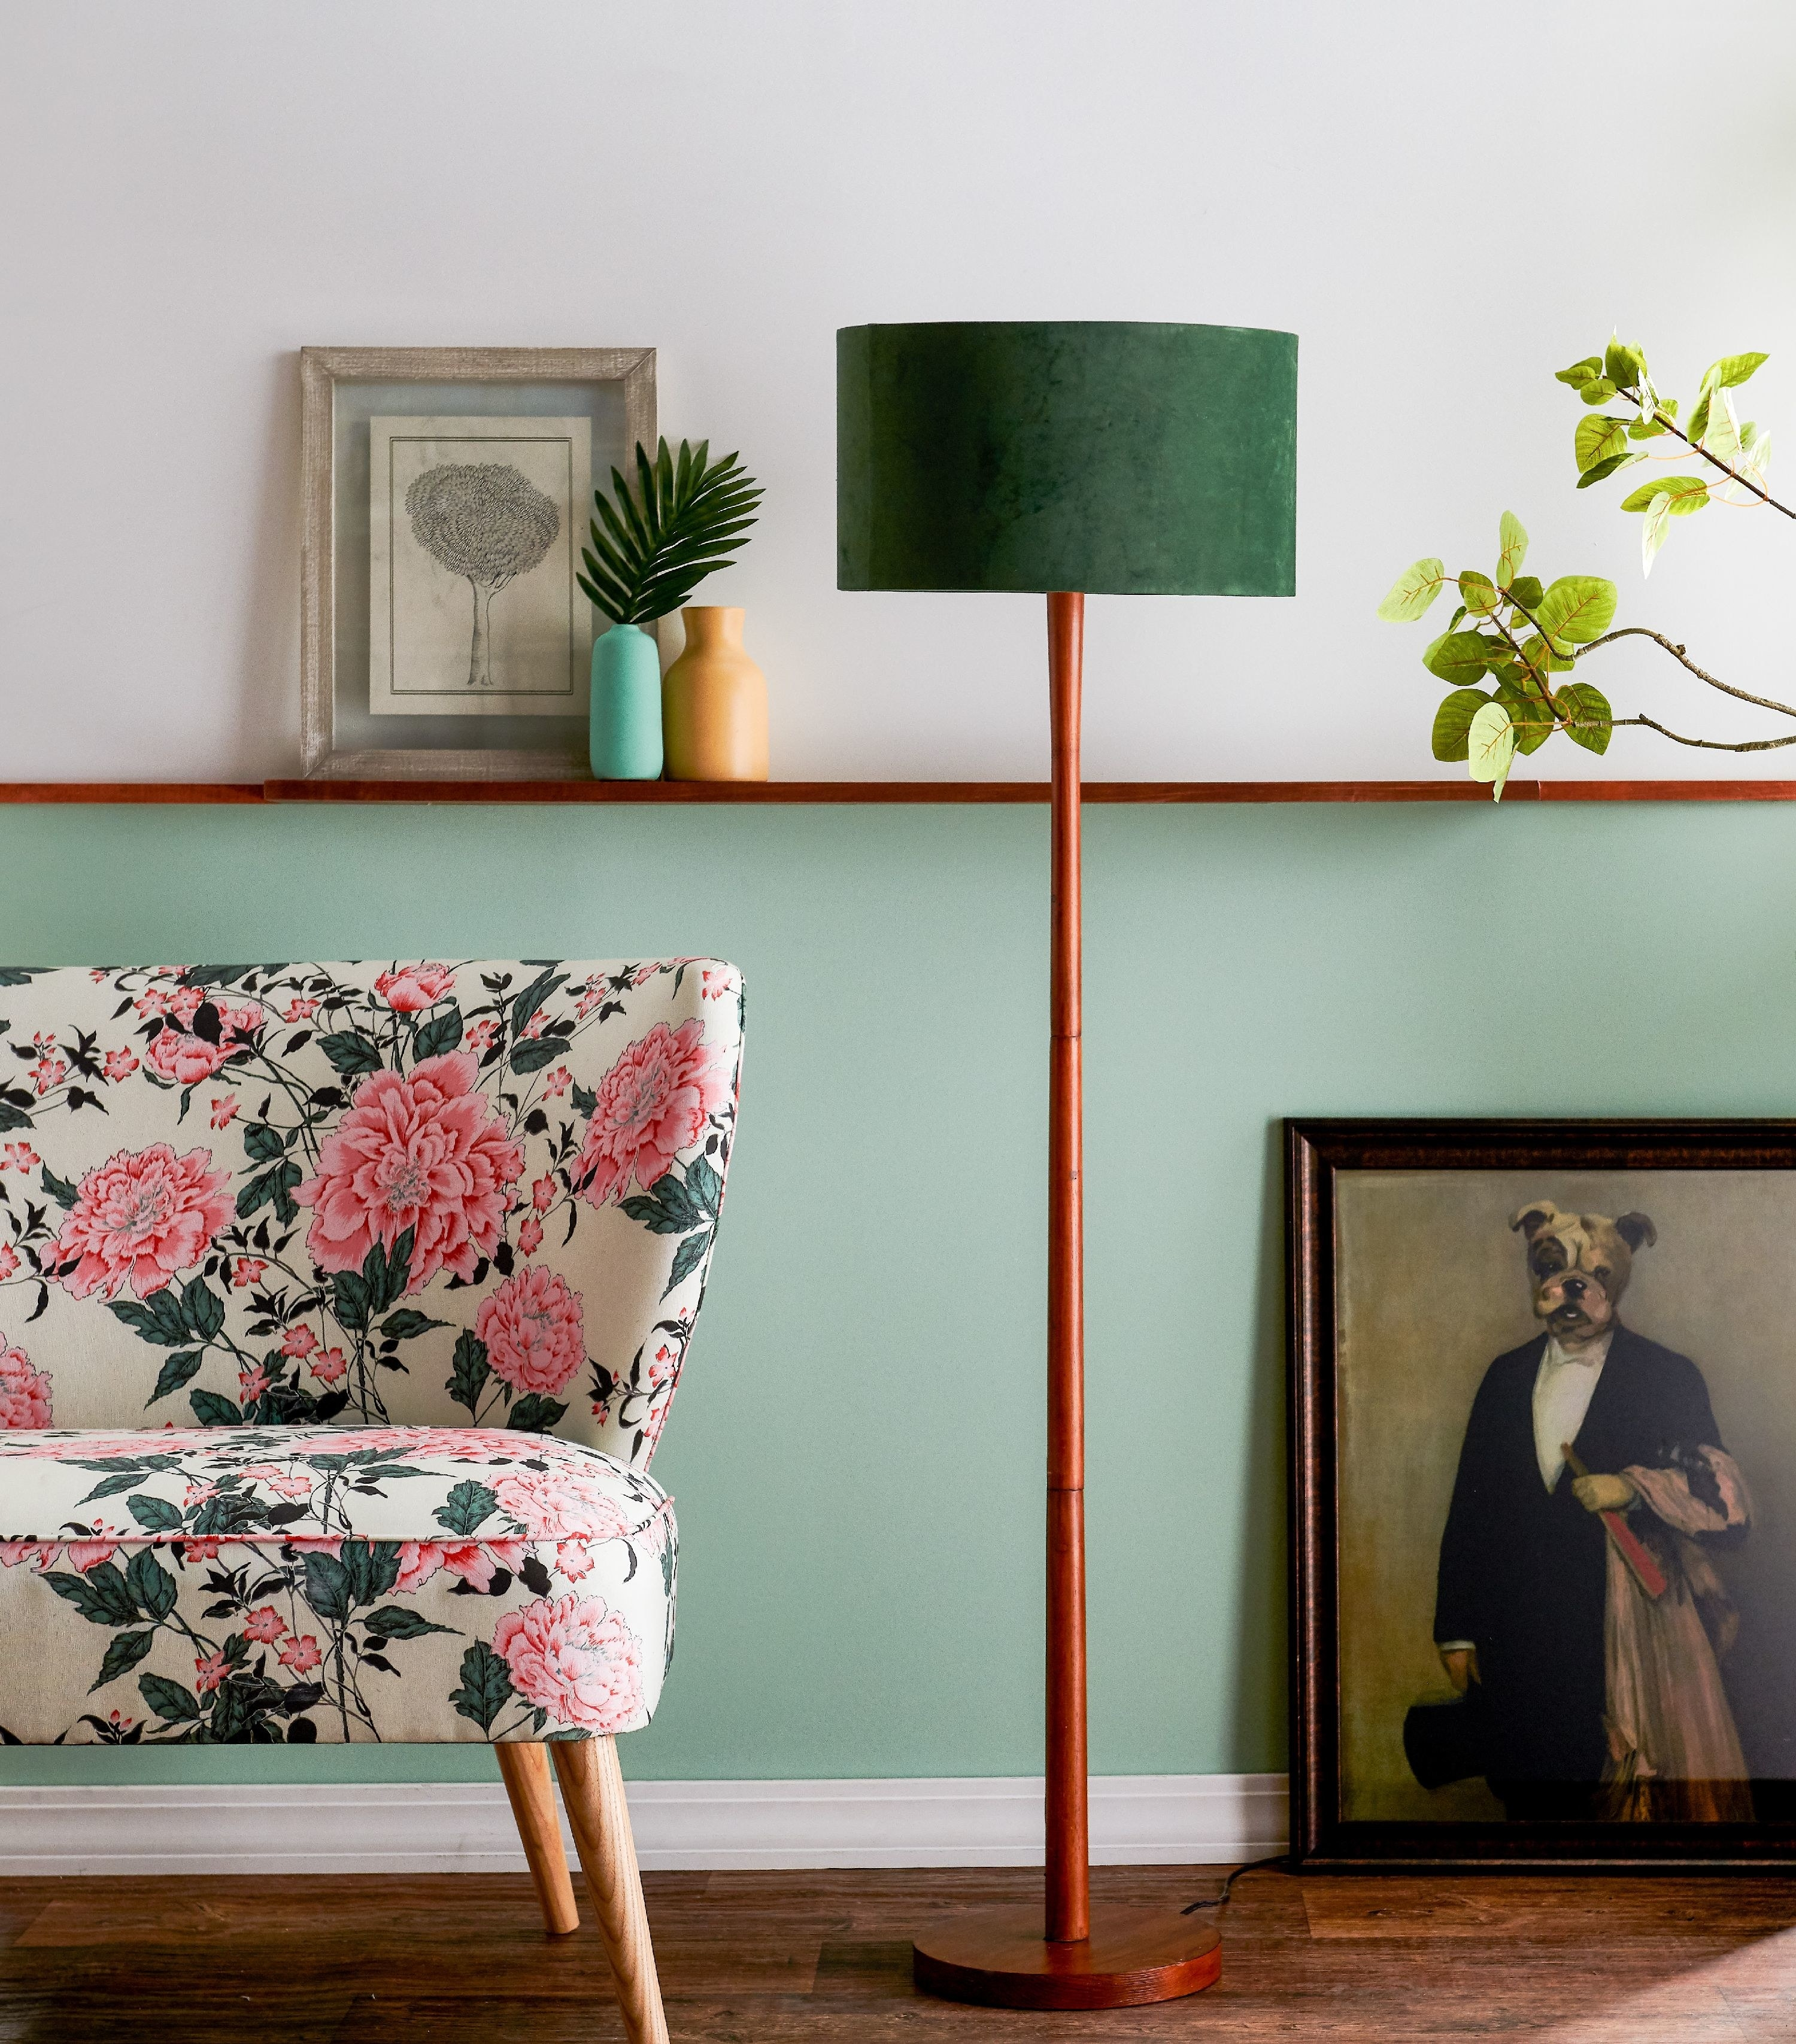 The lamp, which has a round base, slim rod body, and green velvet drum shade